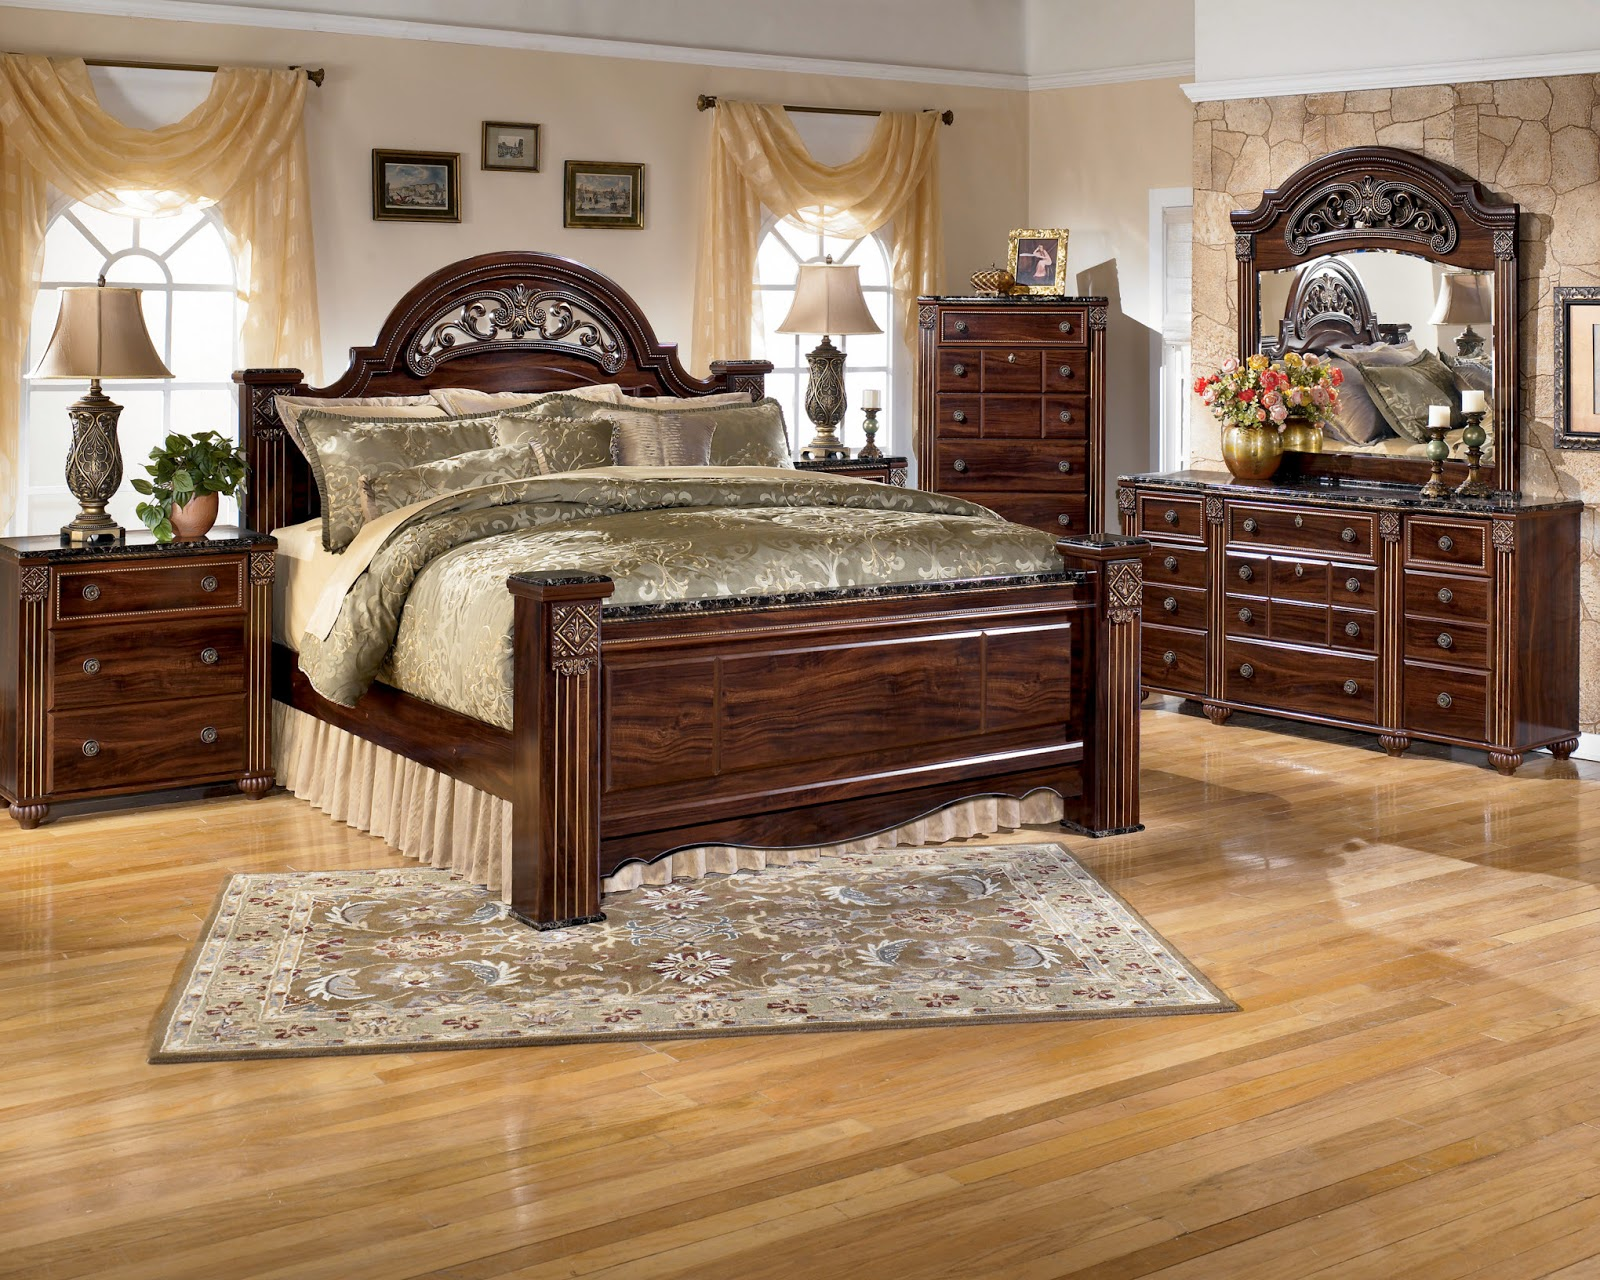 Bedroom Furniture Sets8[1]